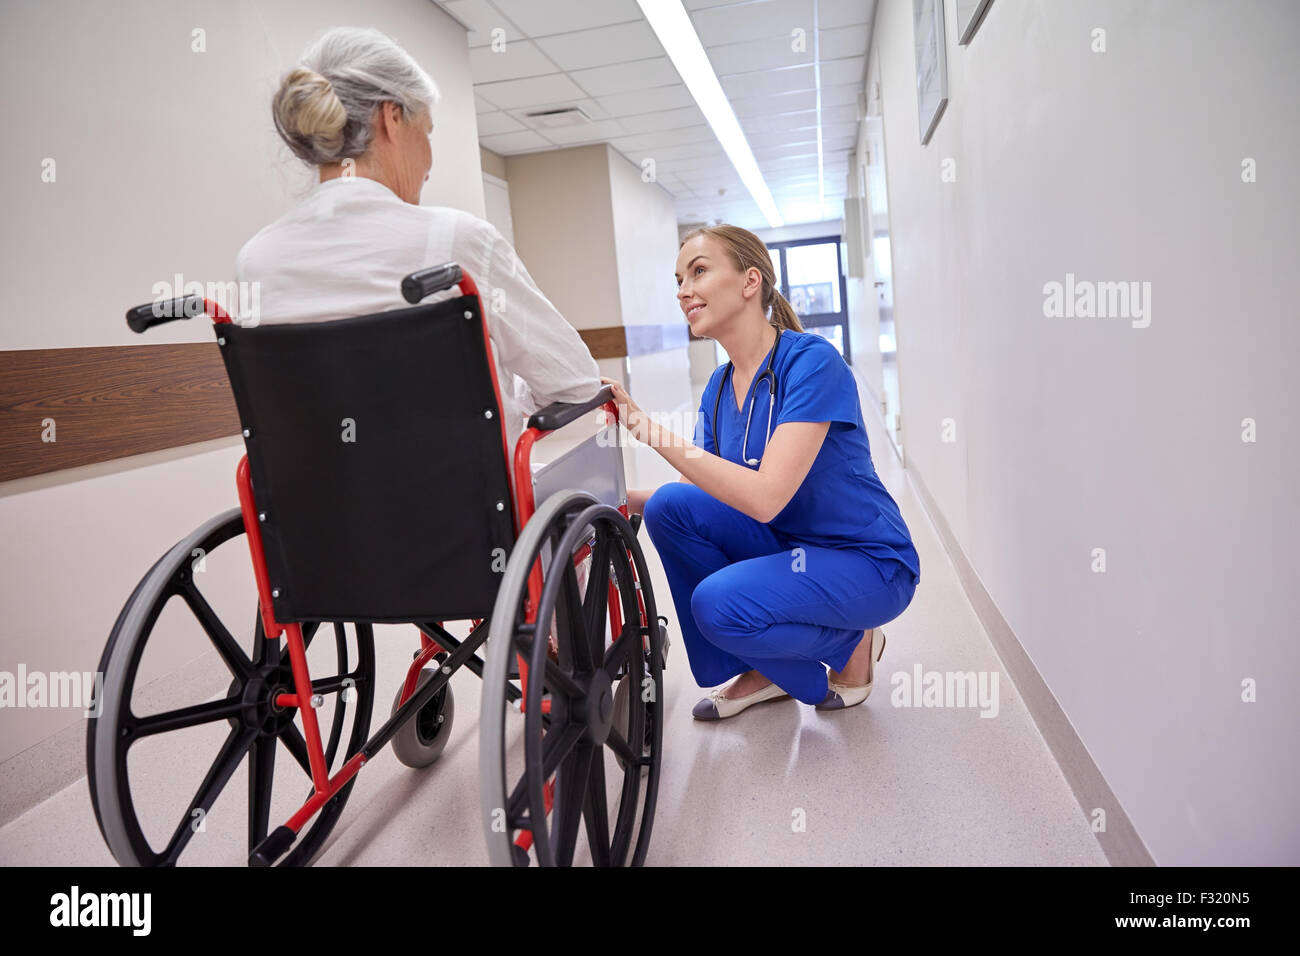 Nurse with senior woman in wheelchair at hospital Photo Stock